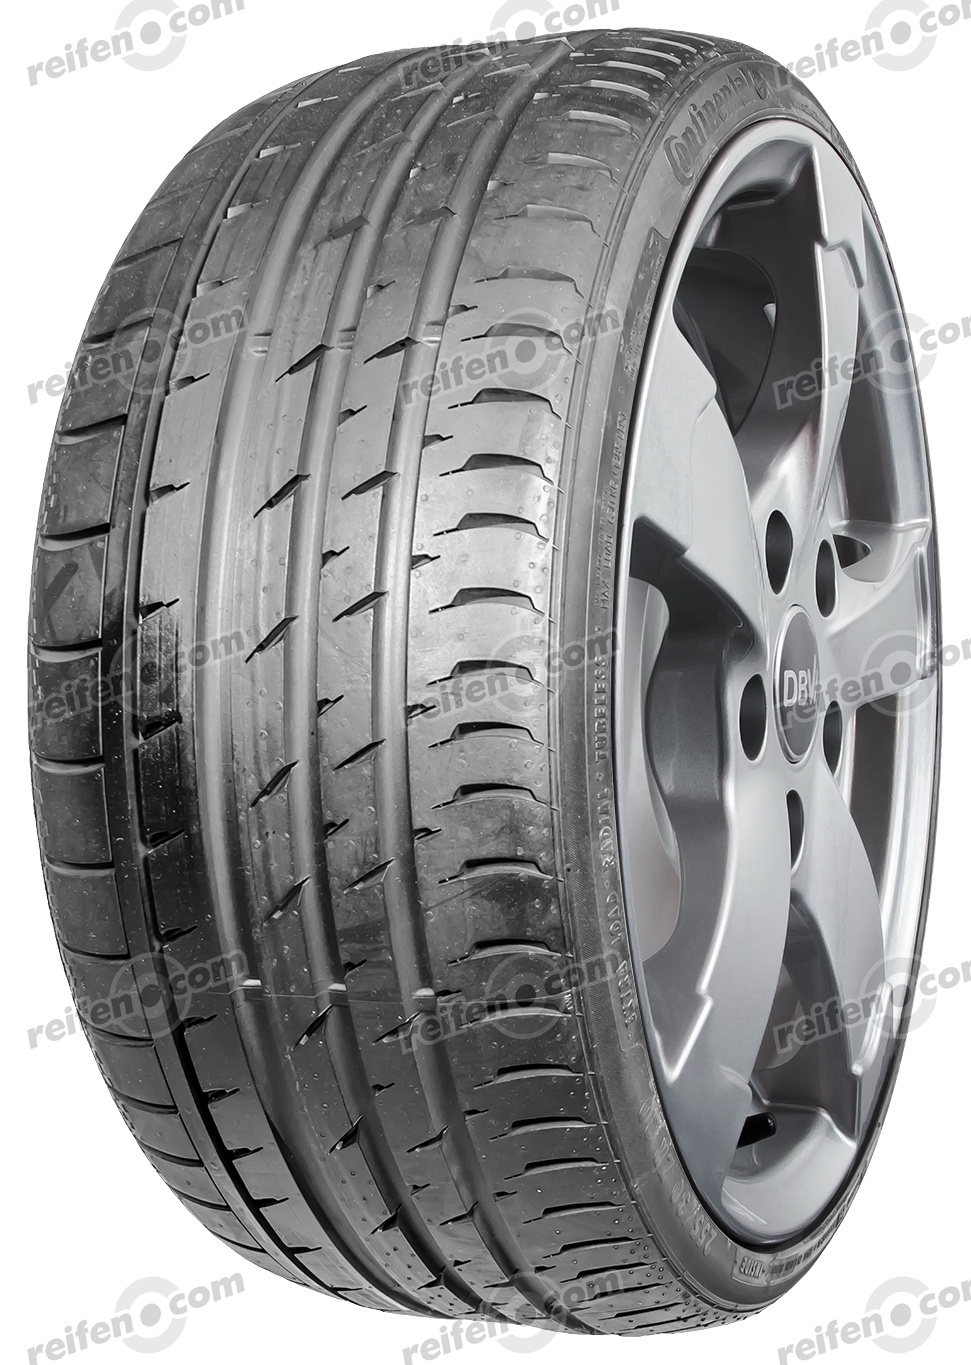 245/50 R18 100Y SportContact 3 SSR *  SportContact 3 SSR *